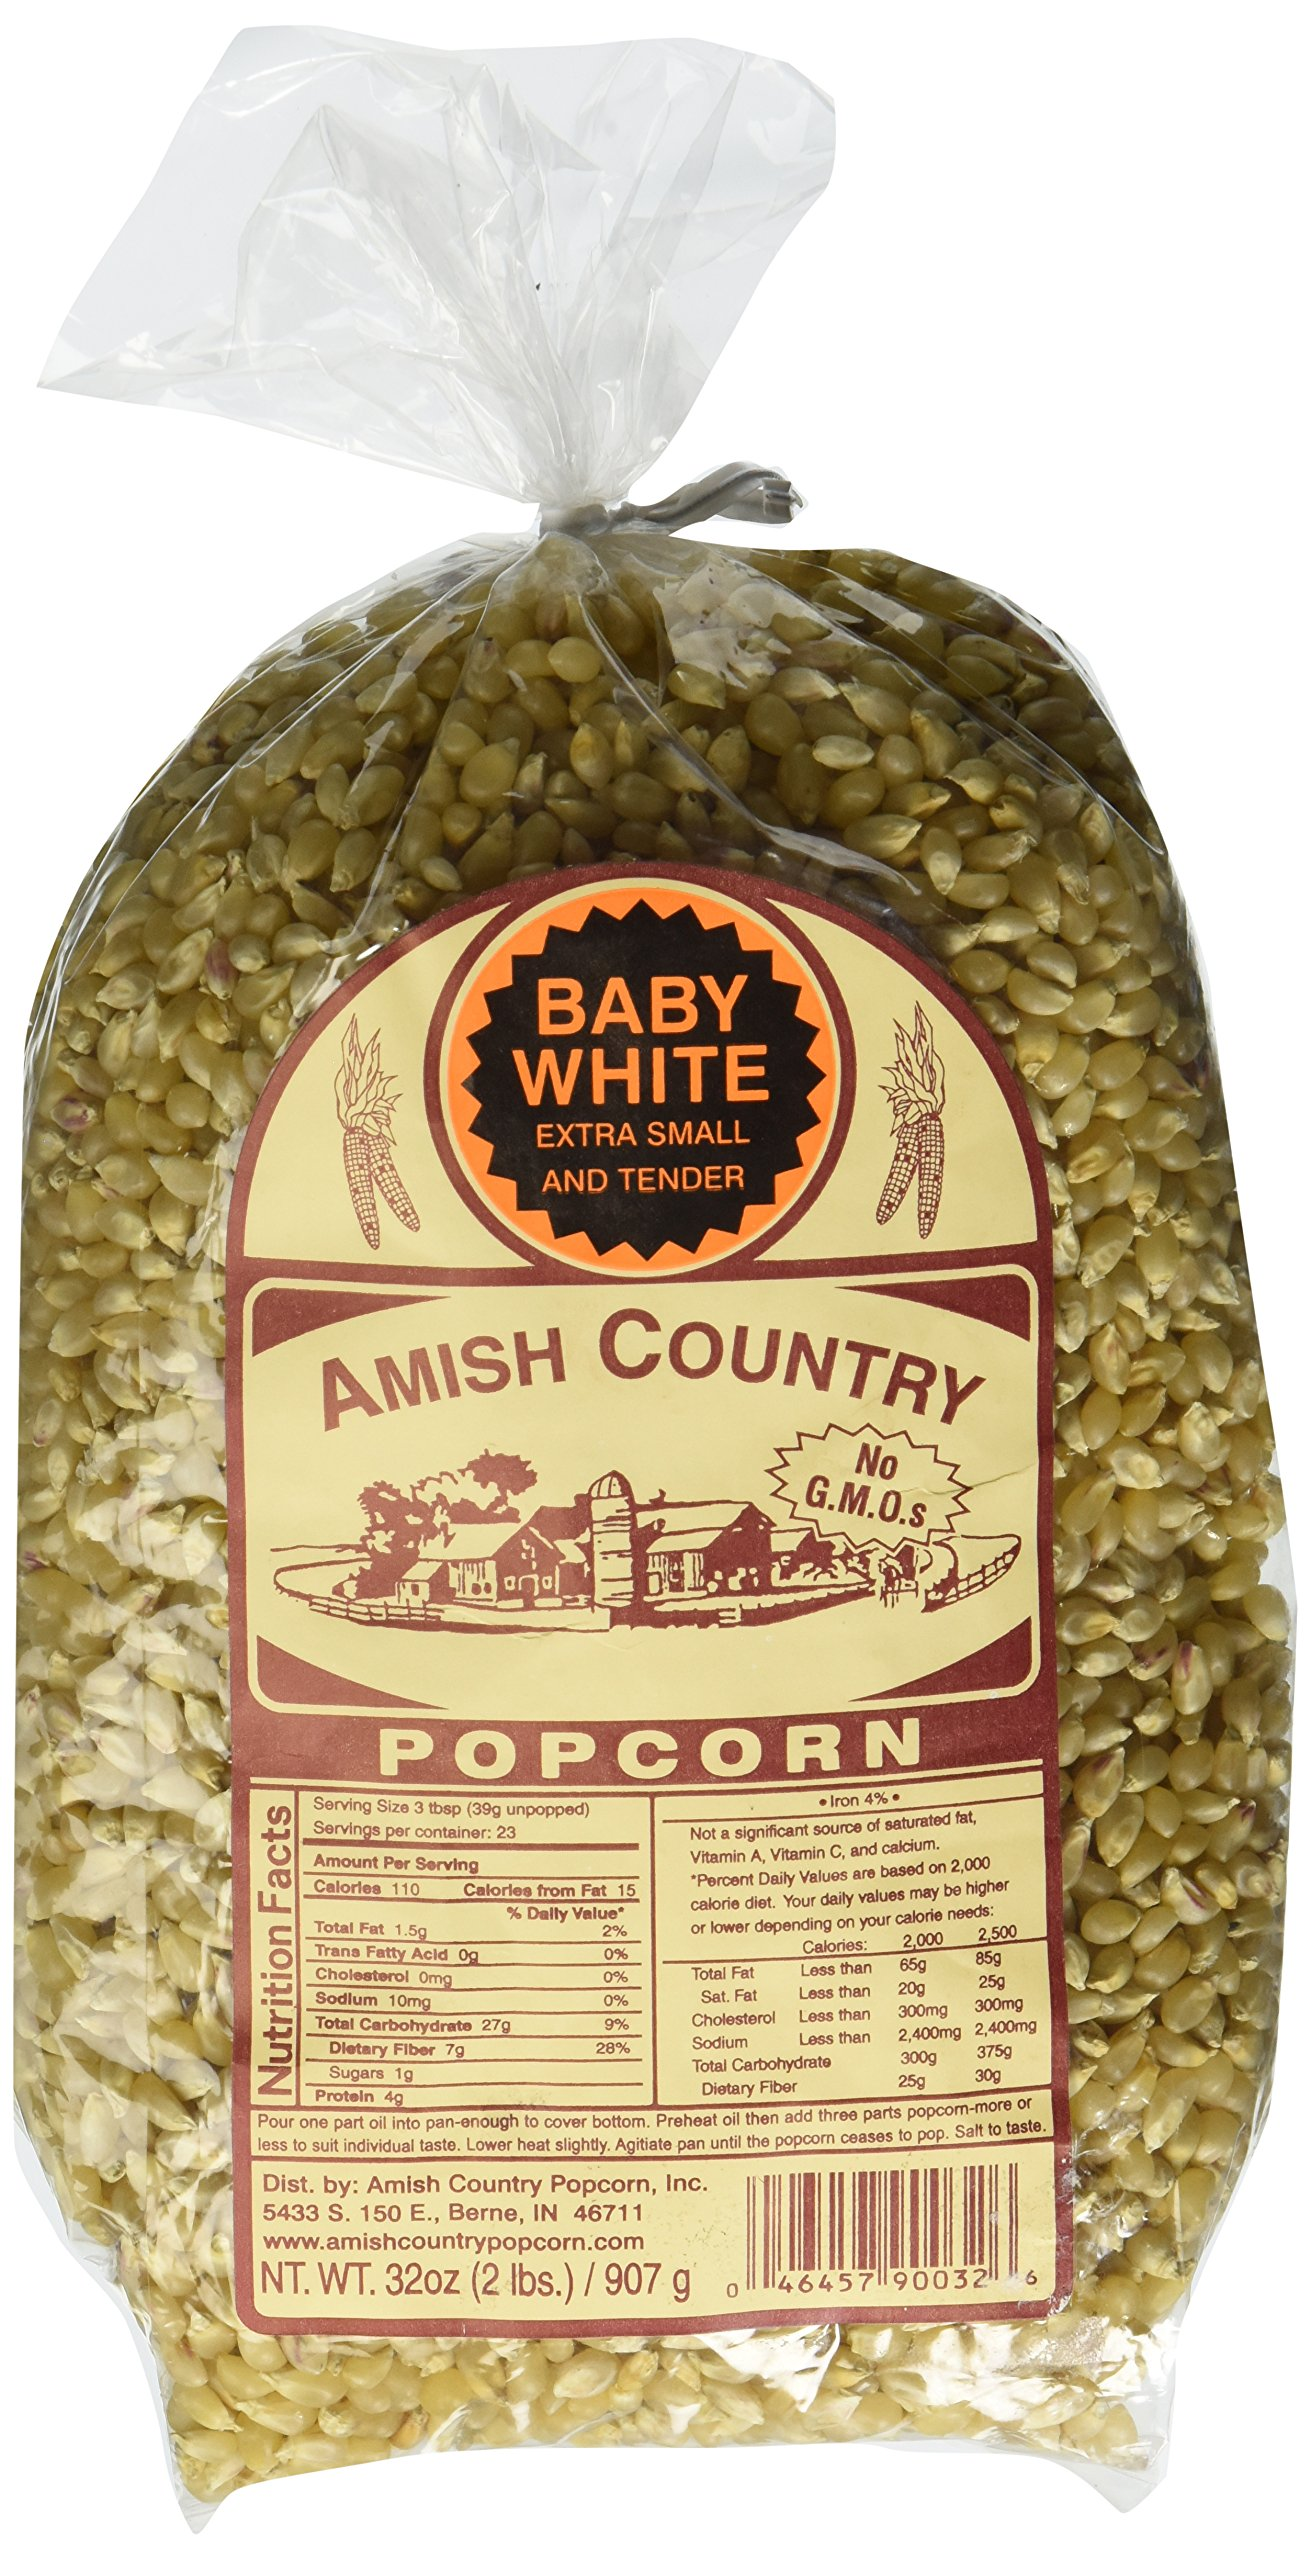 Amish Country Popcorn - Baby White Extra Small and Tender - 2lb Bag with Recipe Guide - Old Fashioned, Non GMO, Gluten Free, Microwaveable, Stovetop and Air Popper Friendly